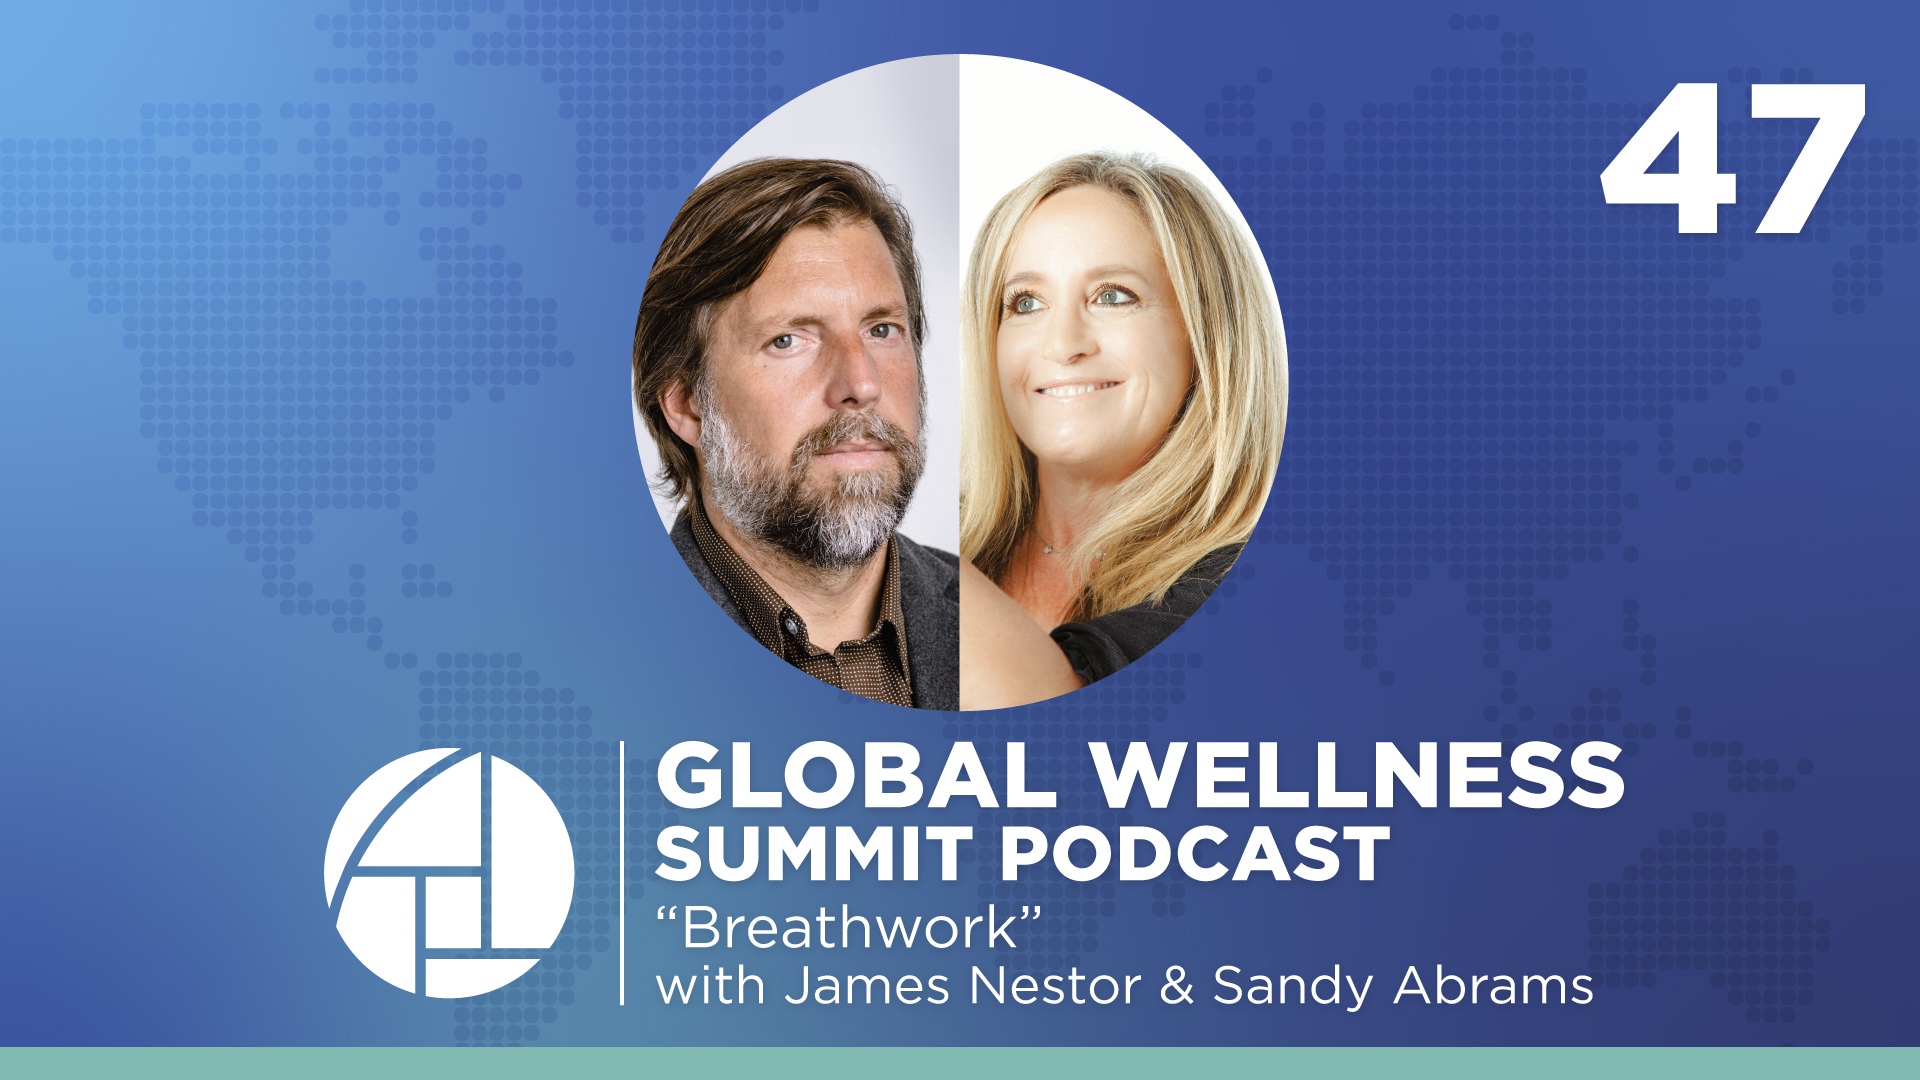 WHY IS BREATHING SUDDENLY SO HIP? - Episode #47 with NYT best-selling author James Nestor